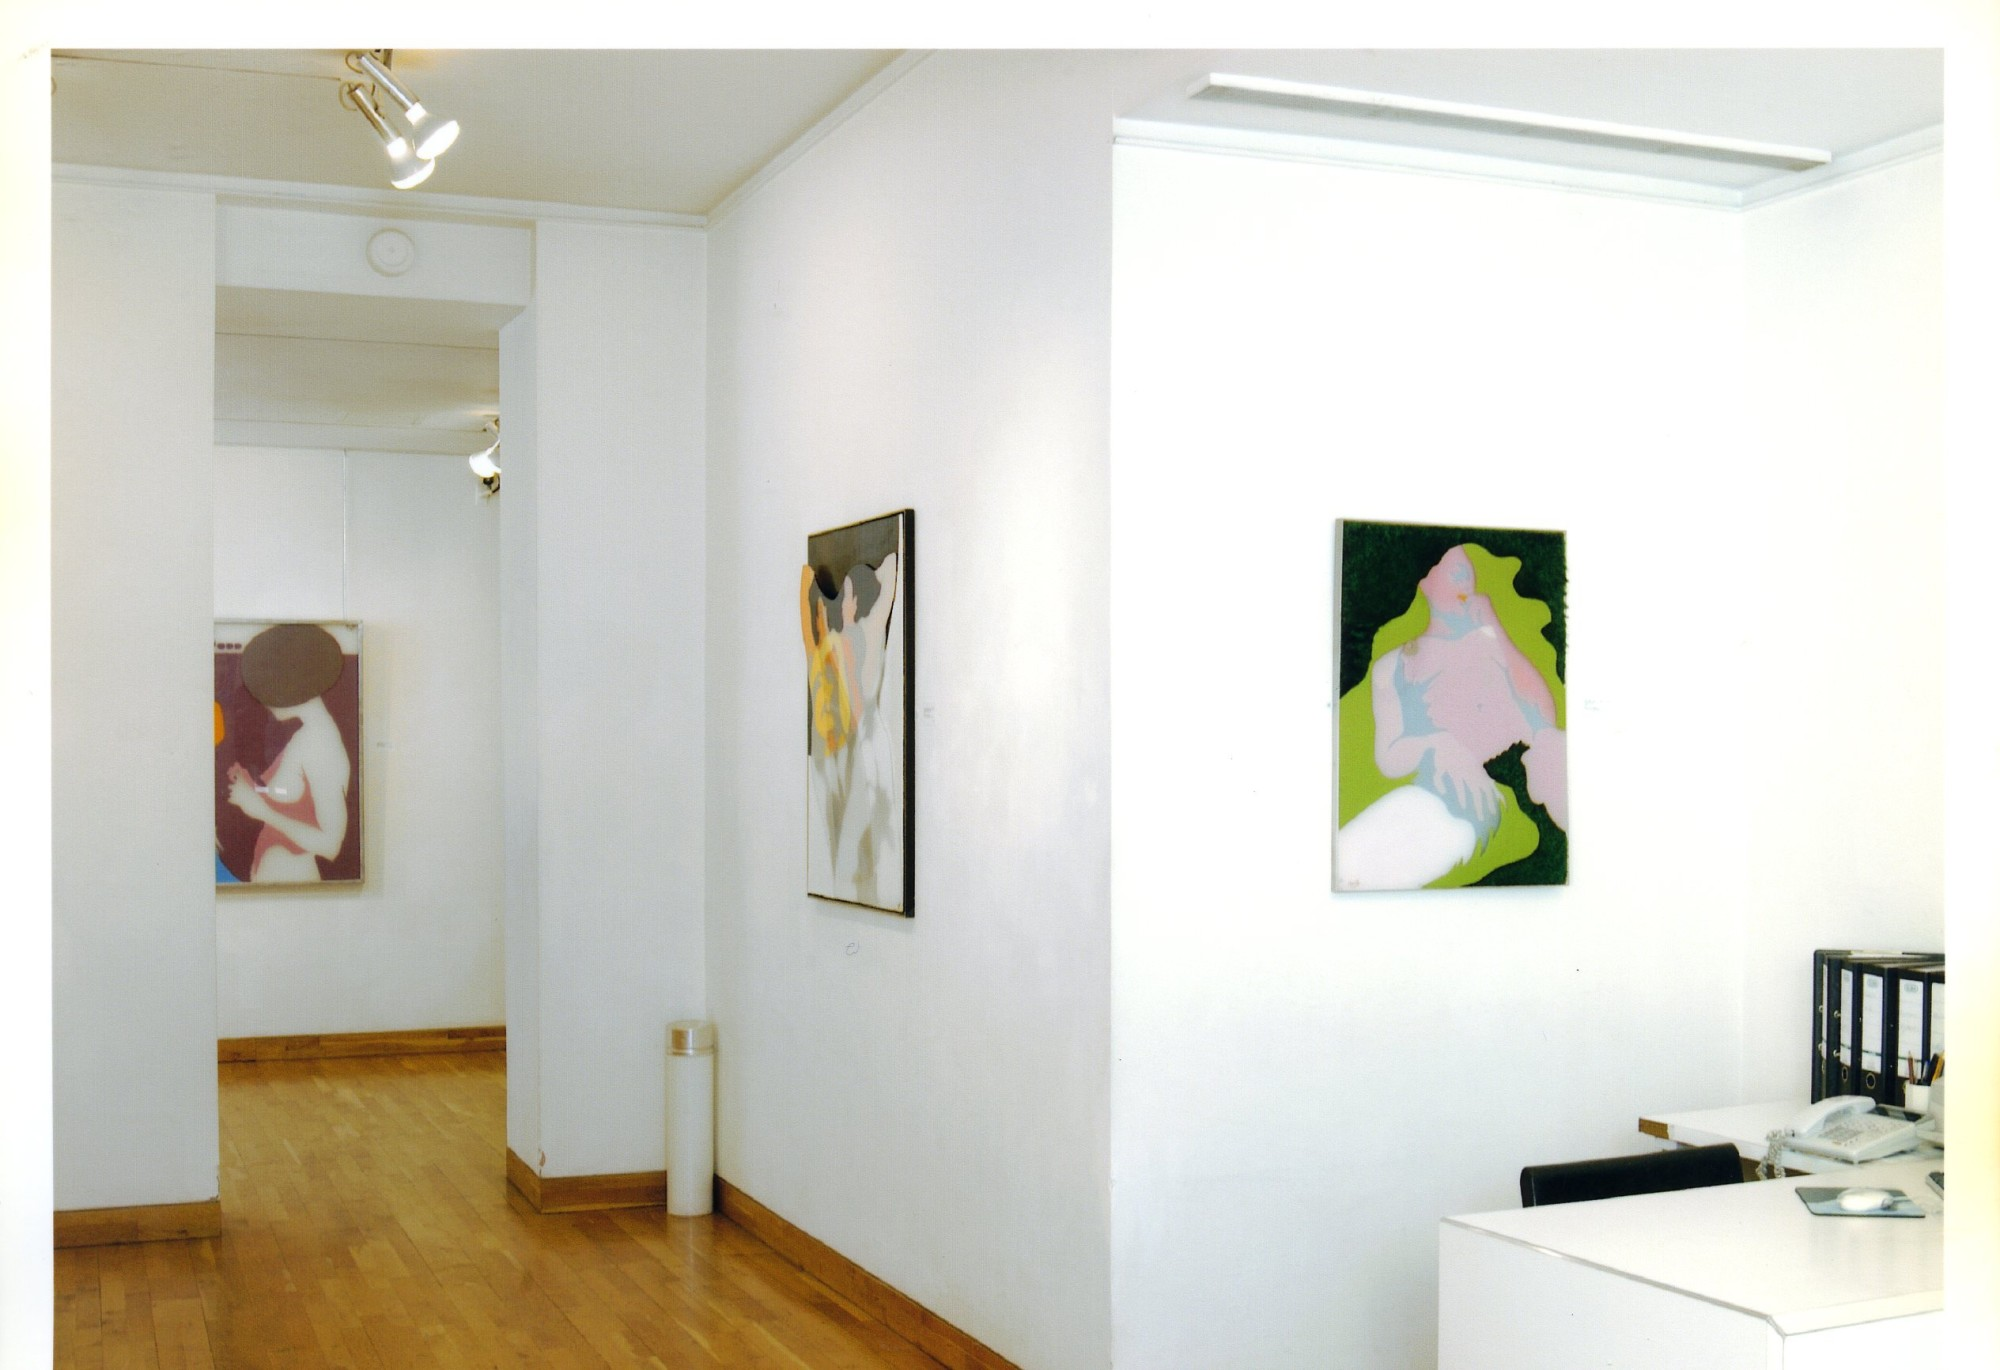 """<span class=""""link fancybox-details-link""""><a href=""""/exhibitions/119/works/image_standalone502/"""">View Detail Page</a></span><p>EVELYNE AXELL   FROM POP ART TO PARADISE   24 MAR - 4 JUL 2005   Installation View</p>"""